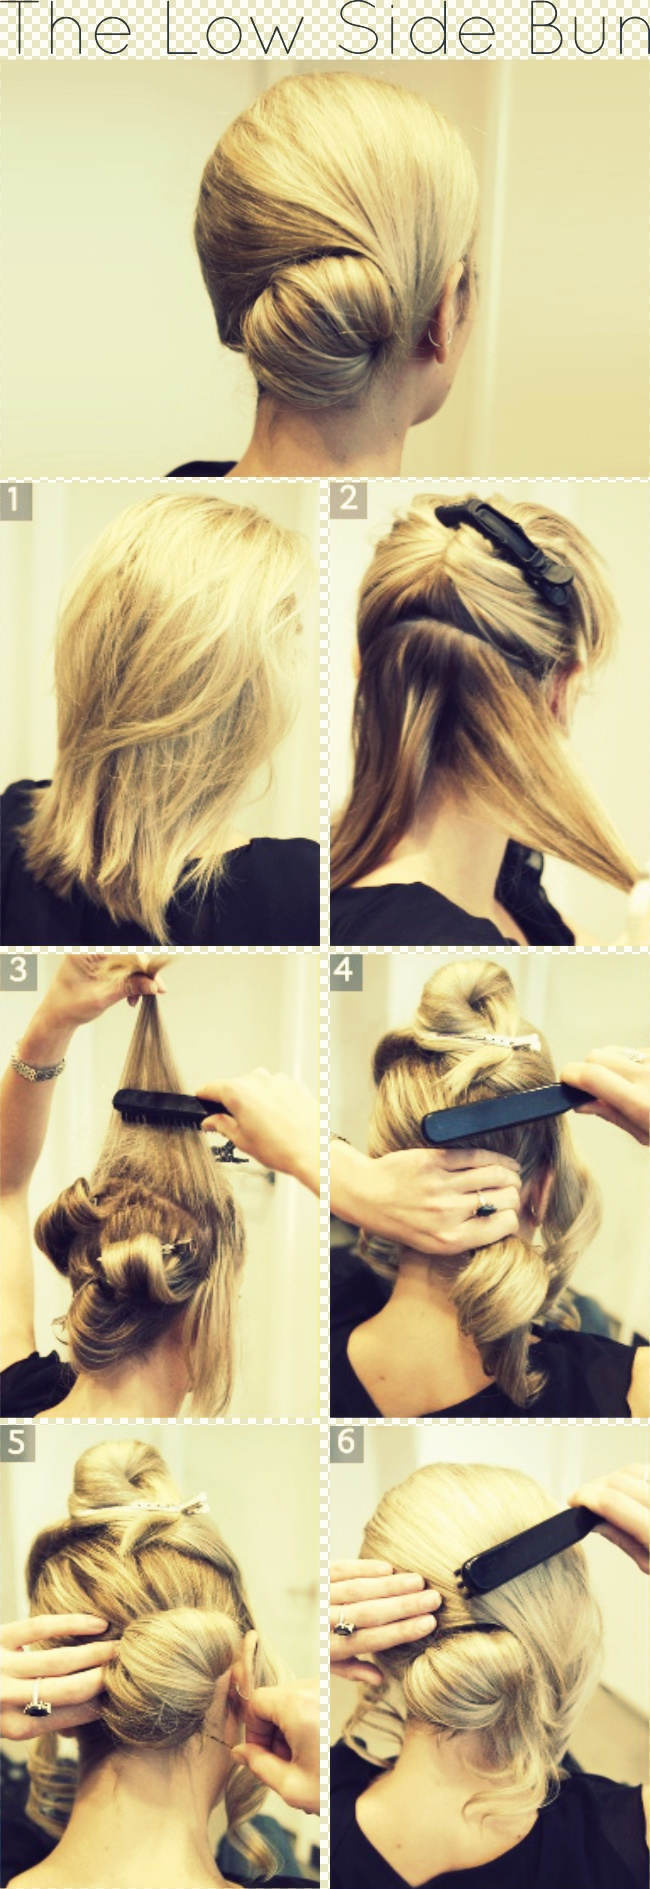 Astounding Graceful And Beautiful Low Side Bun Hairstyle Tutorials And Hair Hairstyle Inspiration Daily Dogsangcom